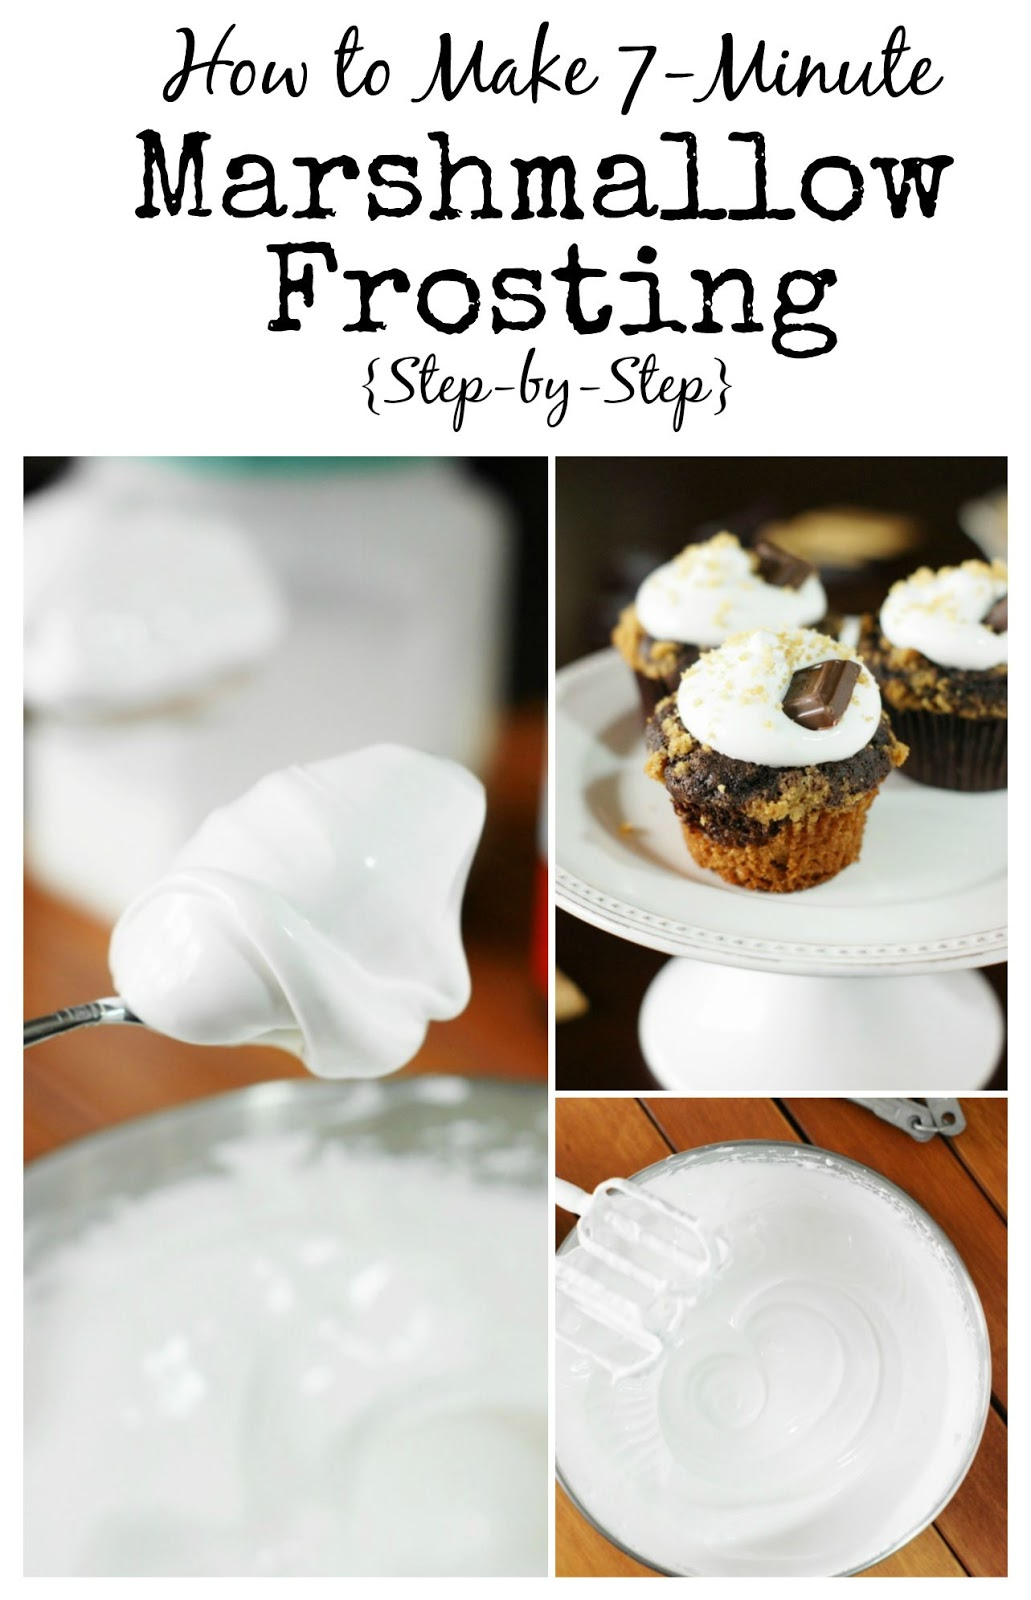 ... Playground: How to Make 7-Minute Marshmallow Frosting {Step-by-Step